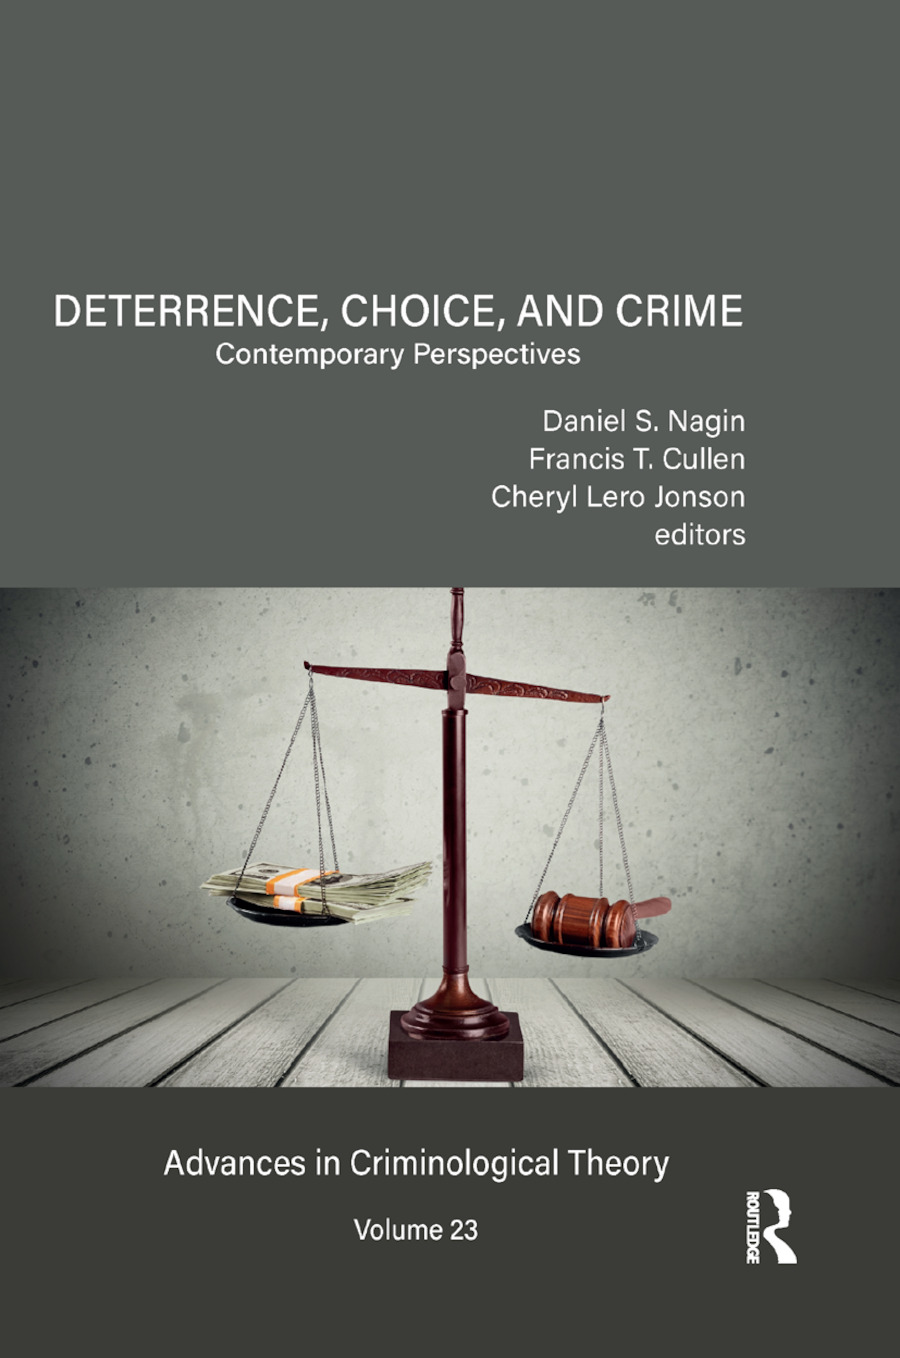 Deterrence, Choice, and Crime, Volume 23: Contemporary Perspectives book cover